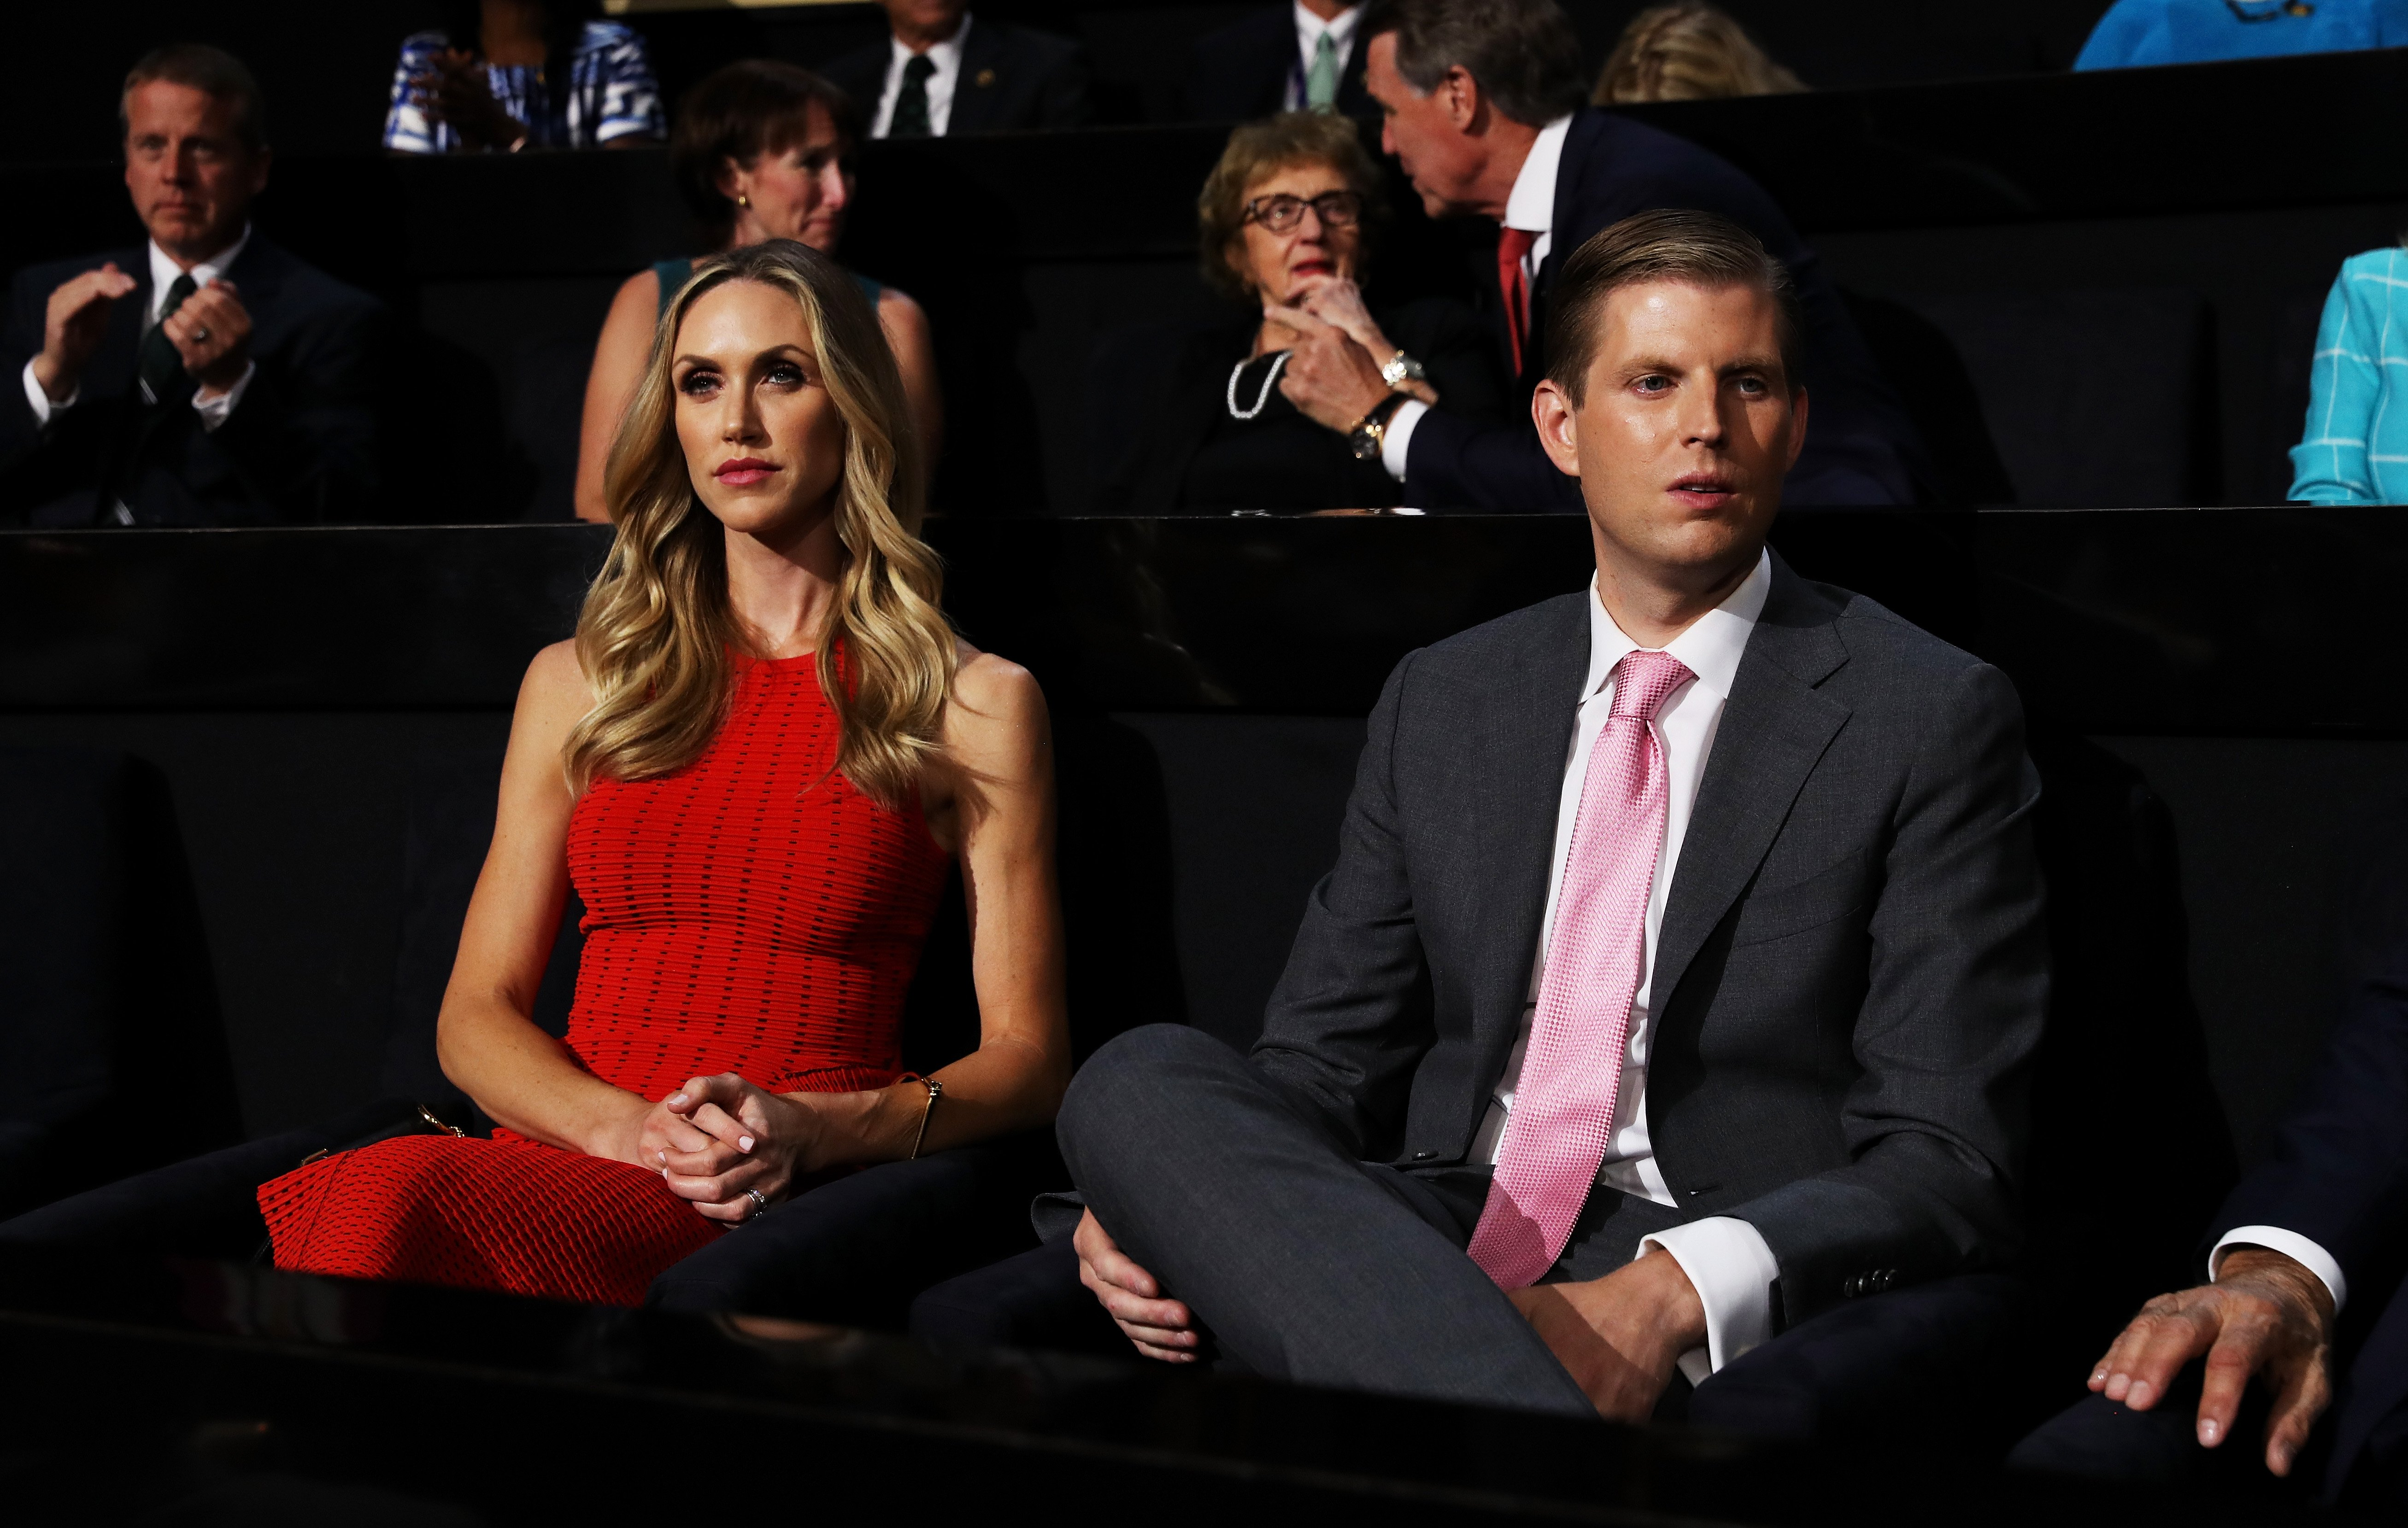 Eric Trump along with his wife, Lara Yunaska, attend the third day of the Republican National Convention on July 20, 2016 at the Quicken Loans Arena in Cleveland, Ohio.